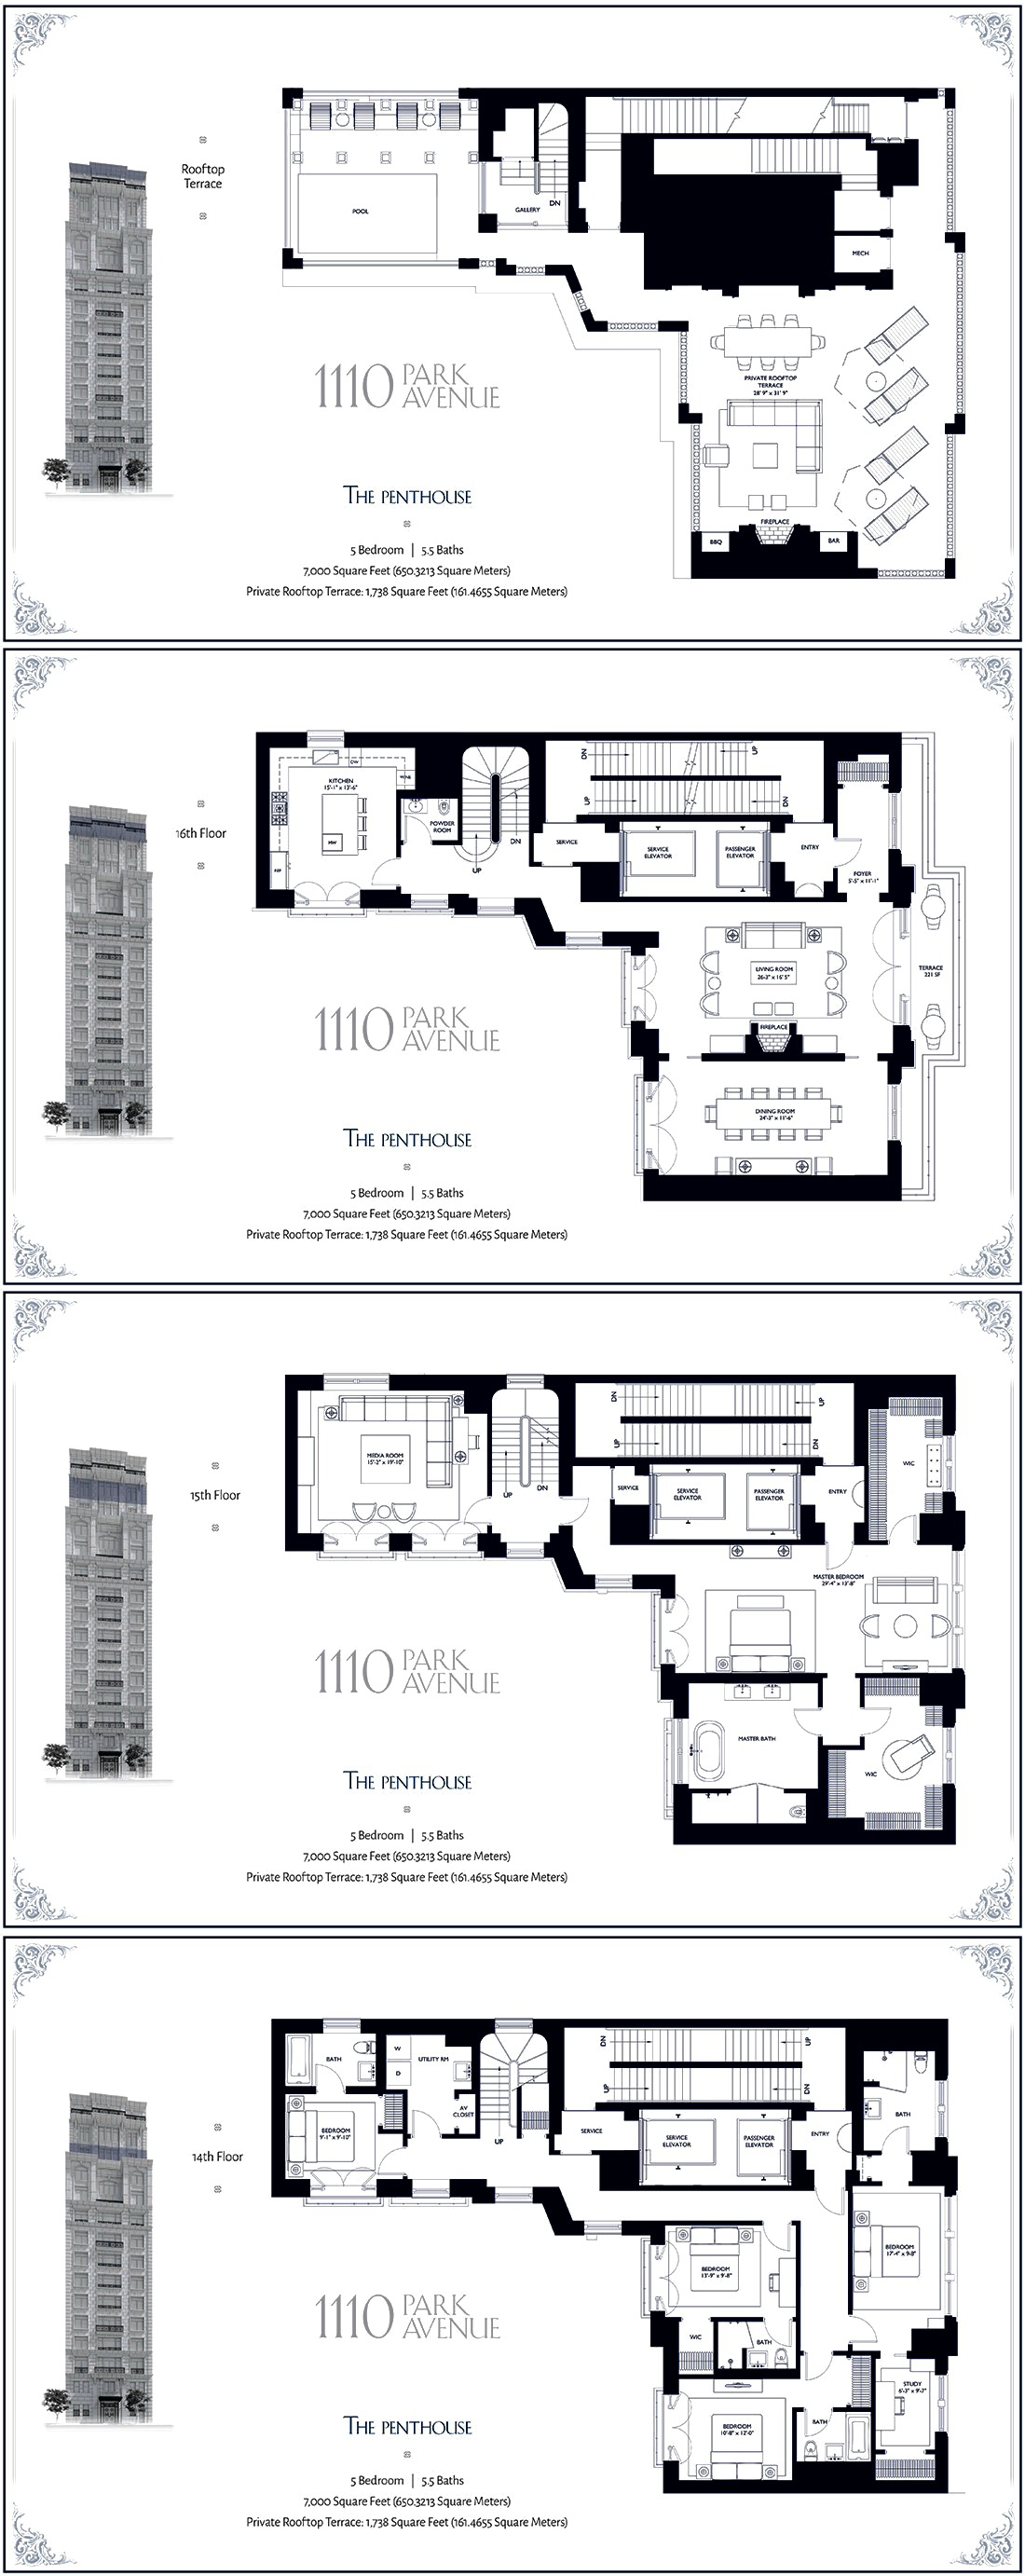 1110 Park Avenue Ph 7 000 Ft 29 500 000 New York Townhouse Apartment Floor Plans Floor Plans